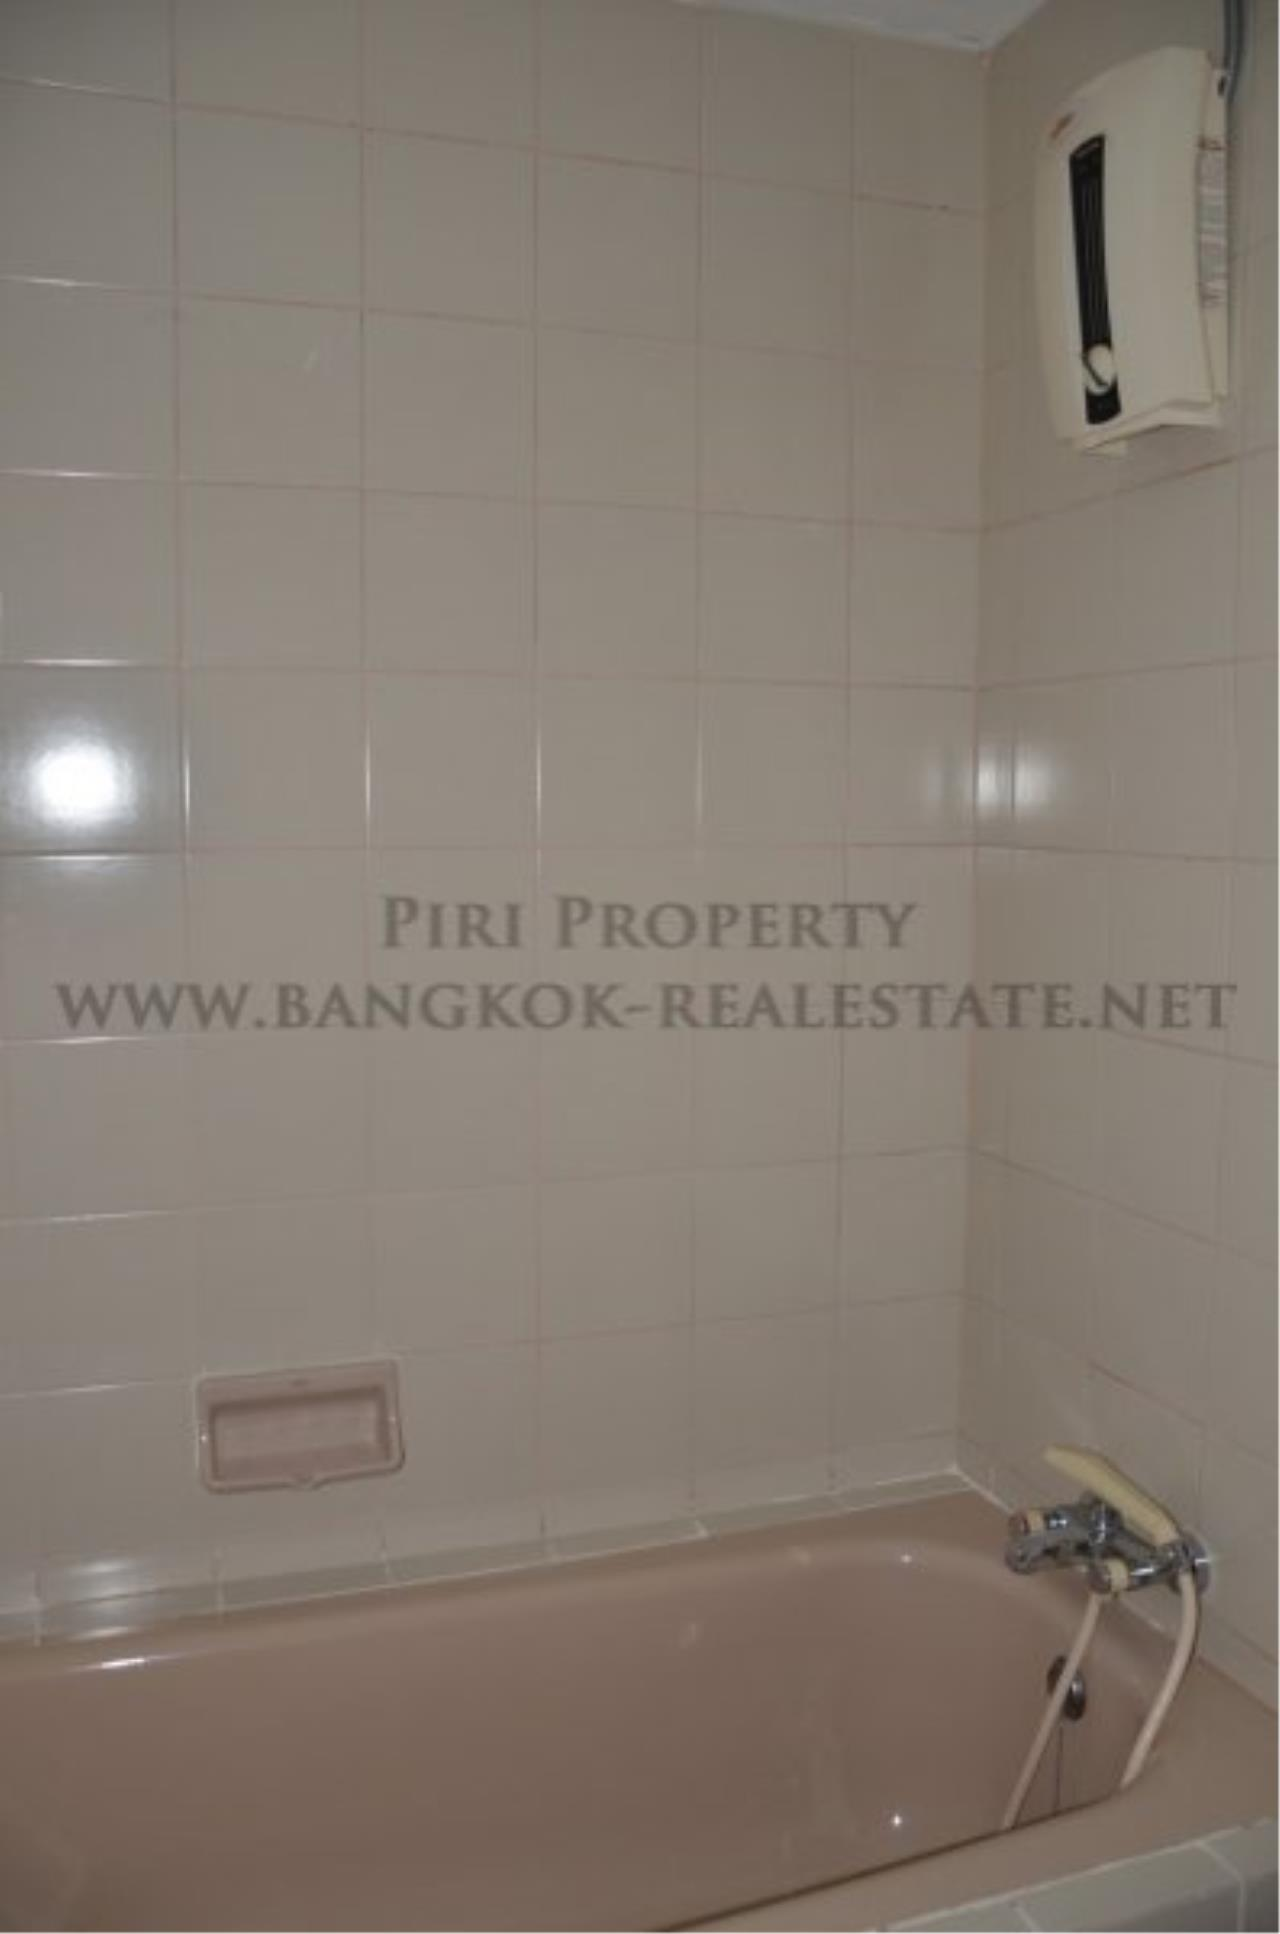 Piri Property Agency's Spacious 3 Bedroom Condo in Ekkamai - 128 SQM for 50K - Top View Tower - 30th Floor 14